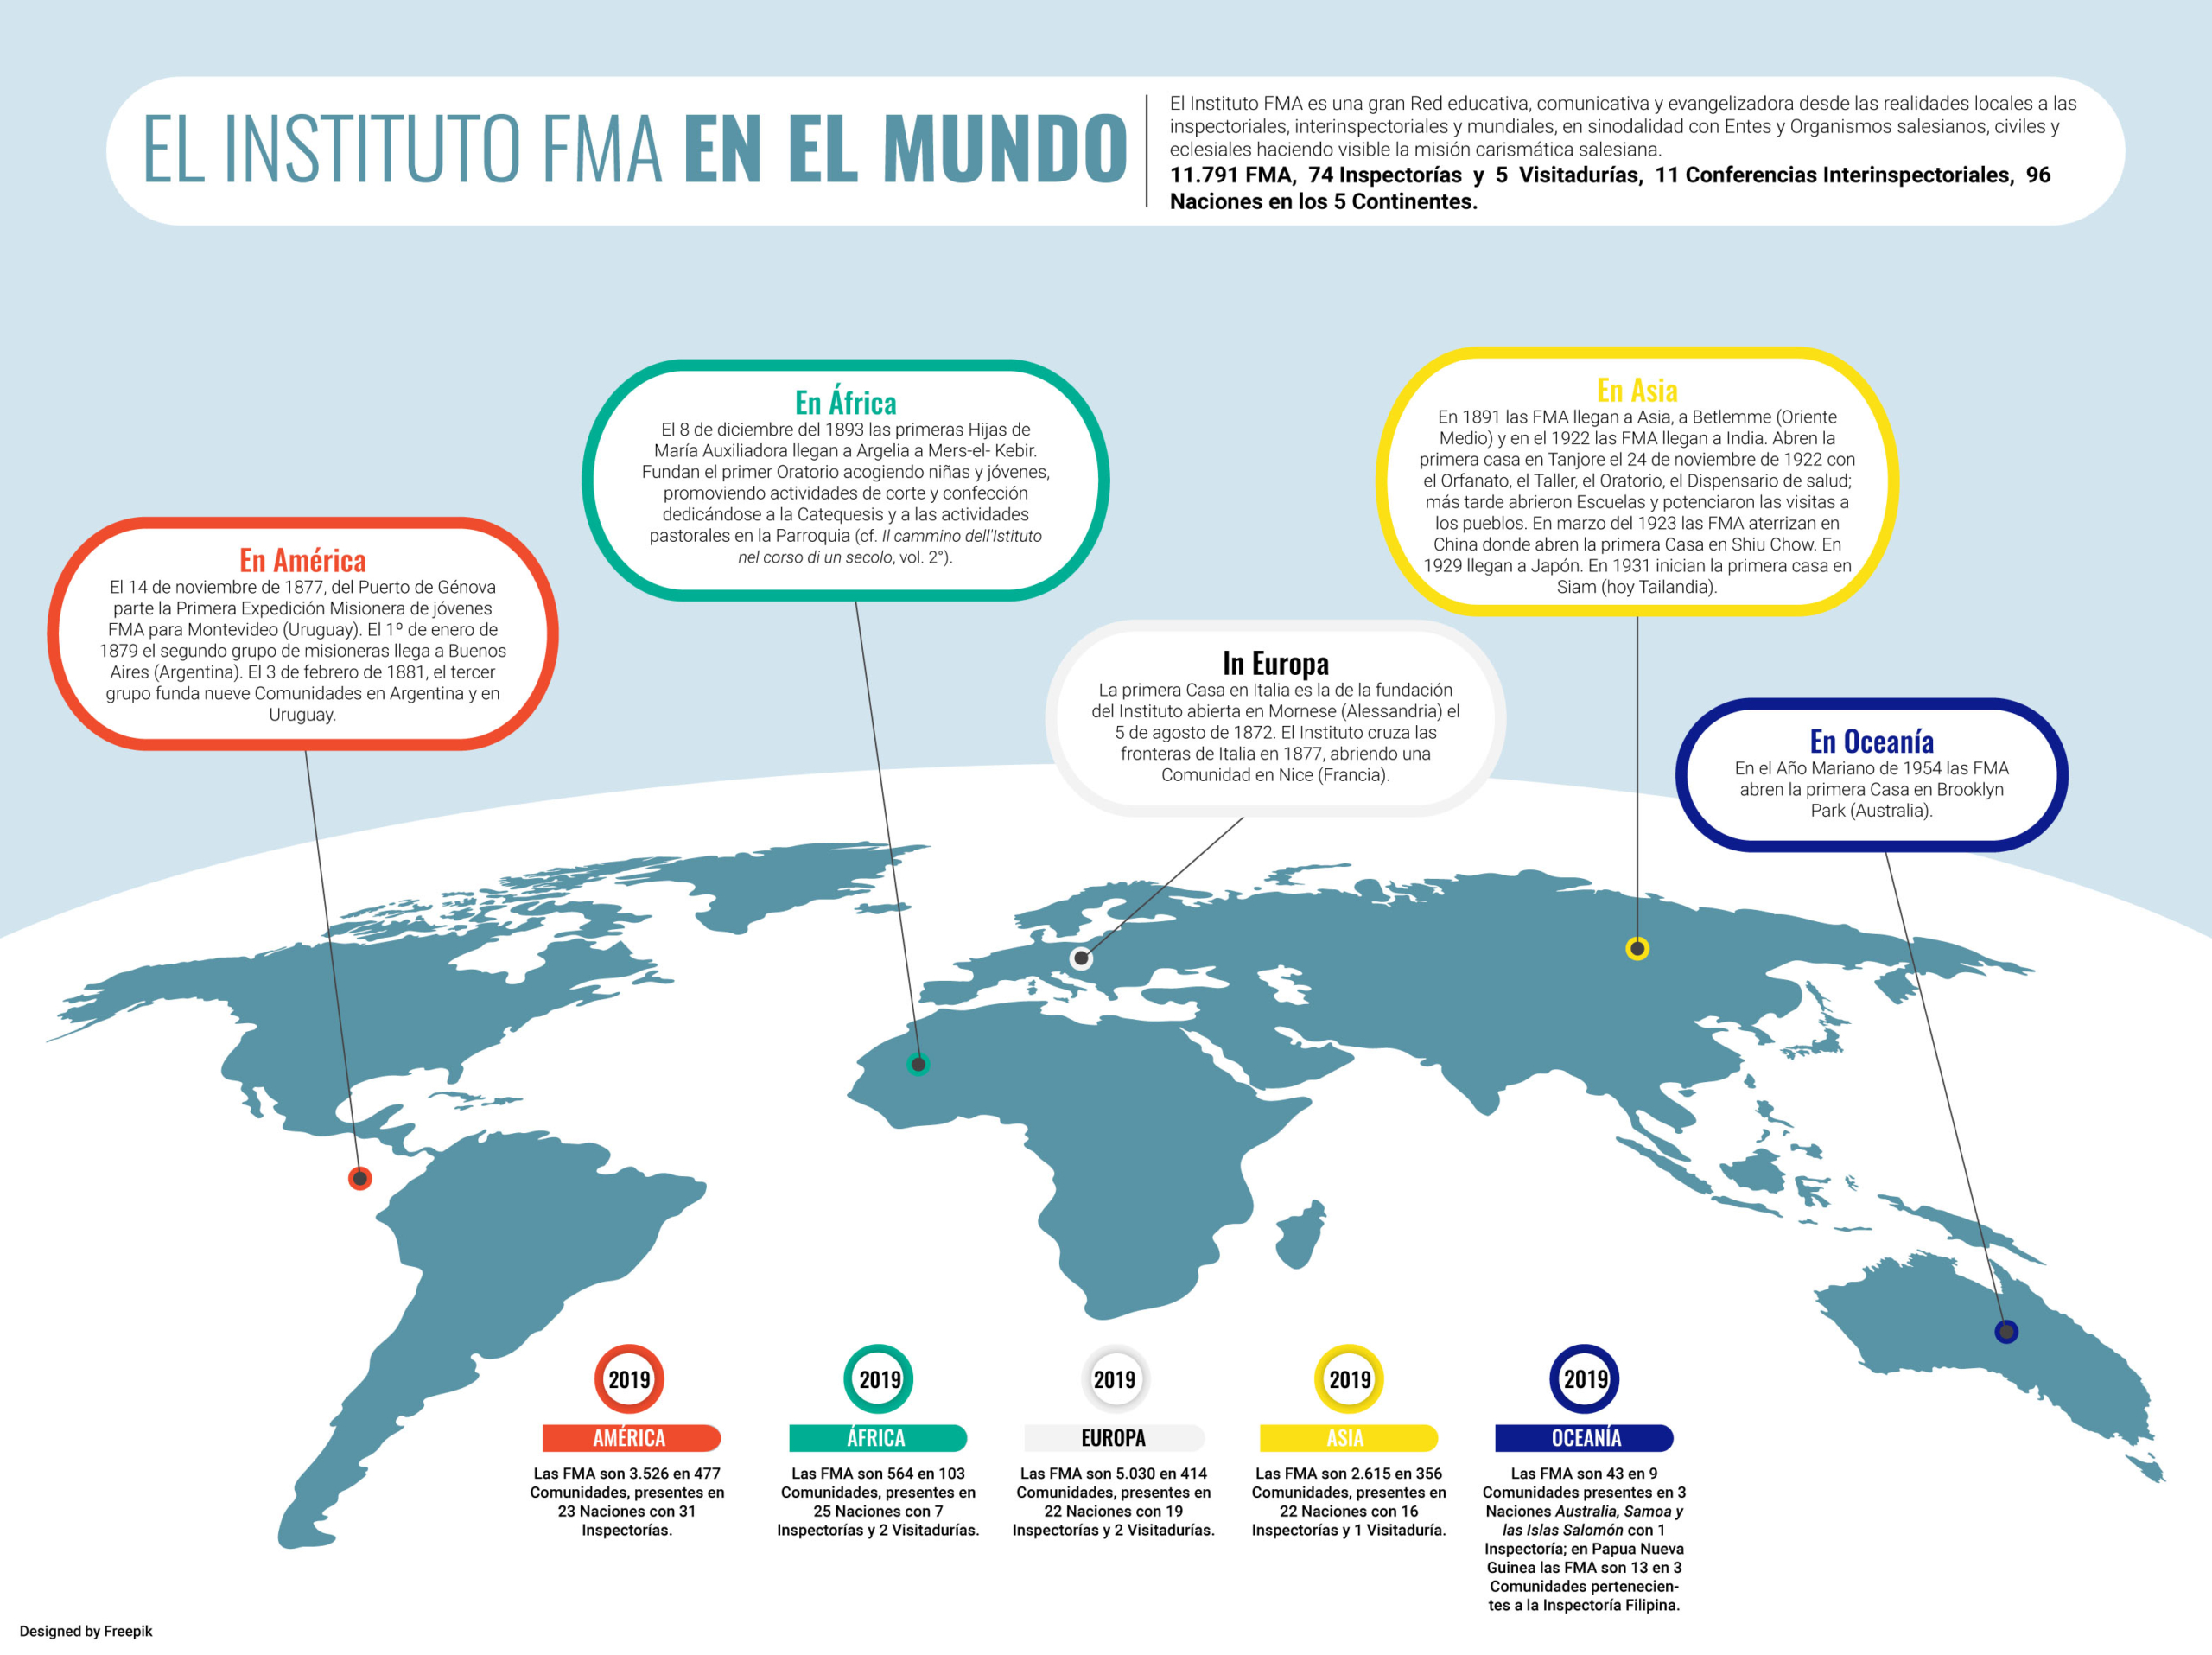 https://salesianas.org/wp-content/uploads/2020/02/el-instituto-fma-en-el-mundo-scaled-2560x1915.jpg